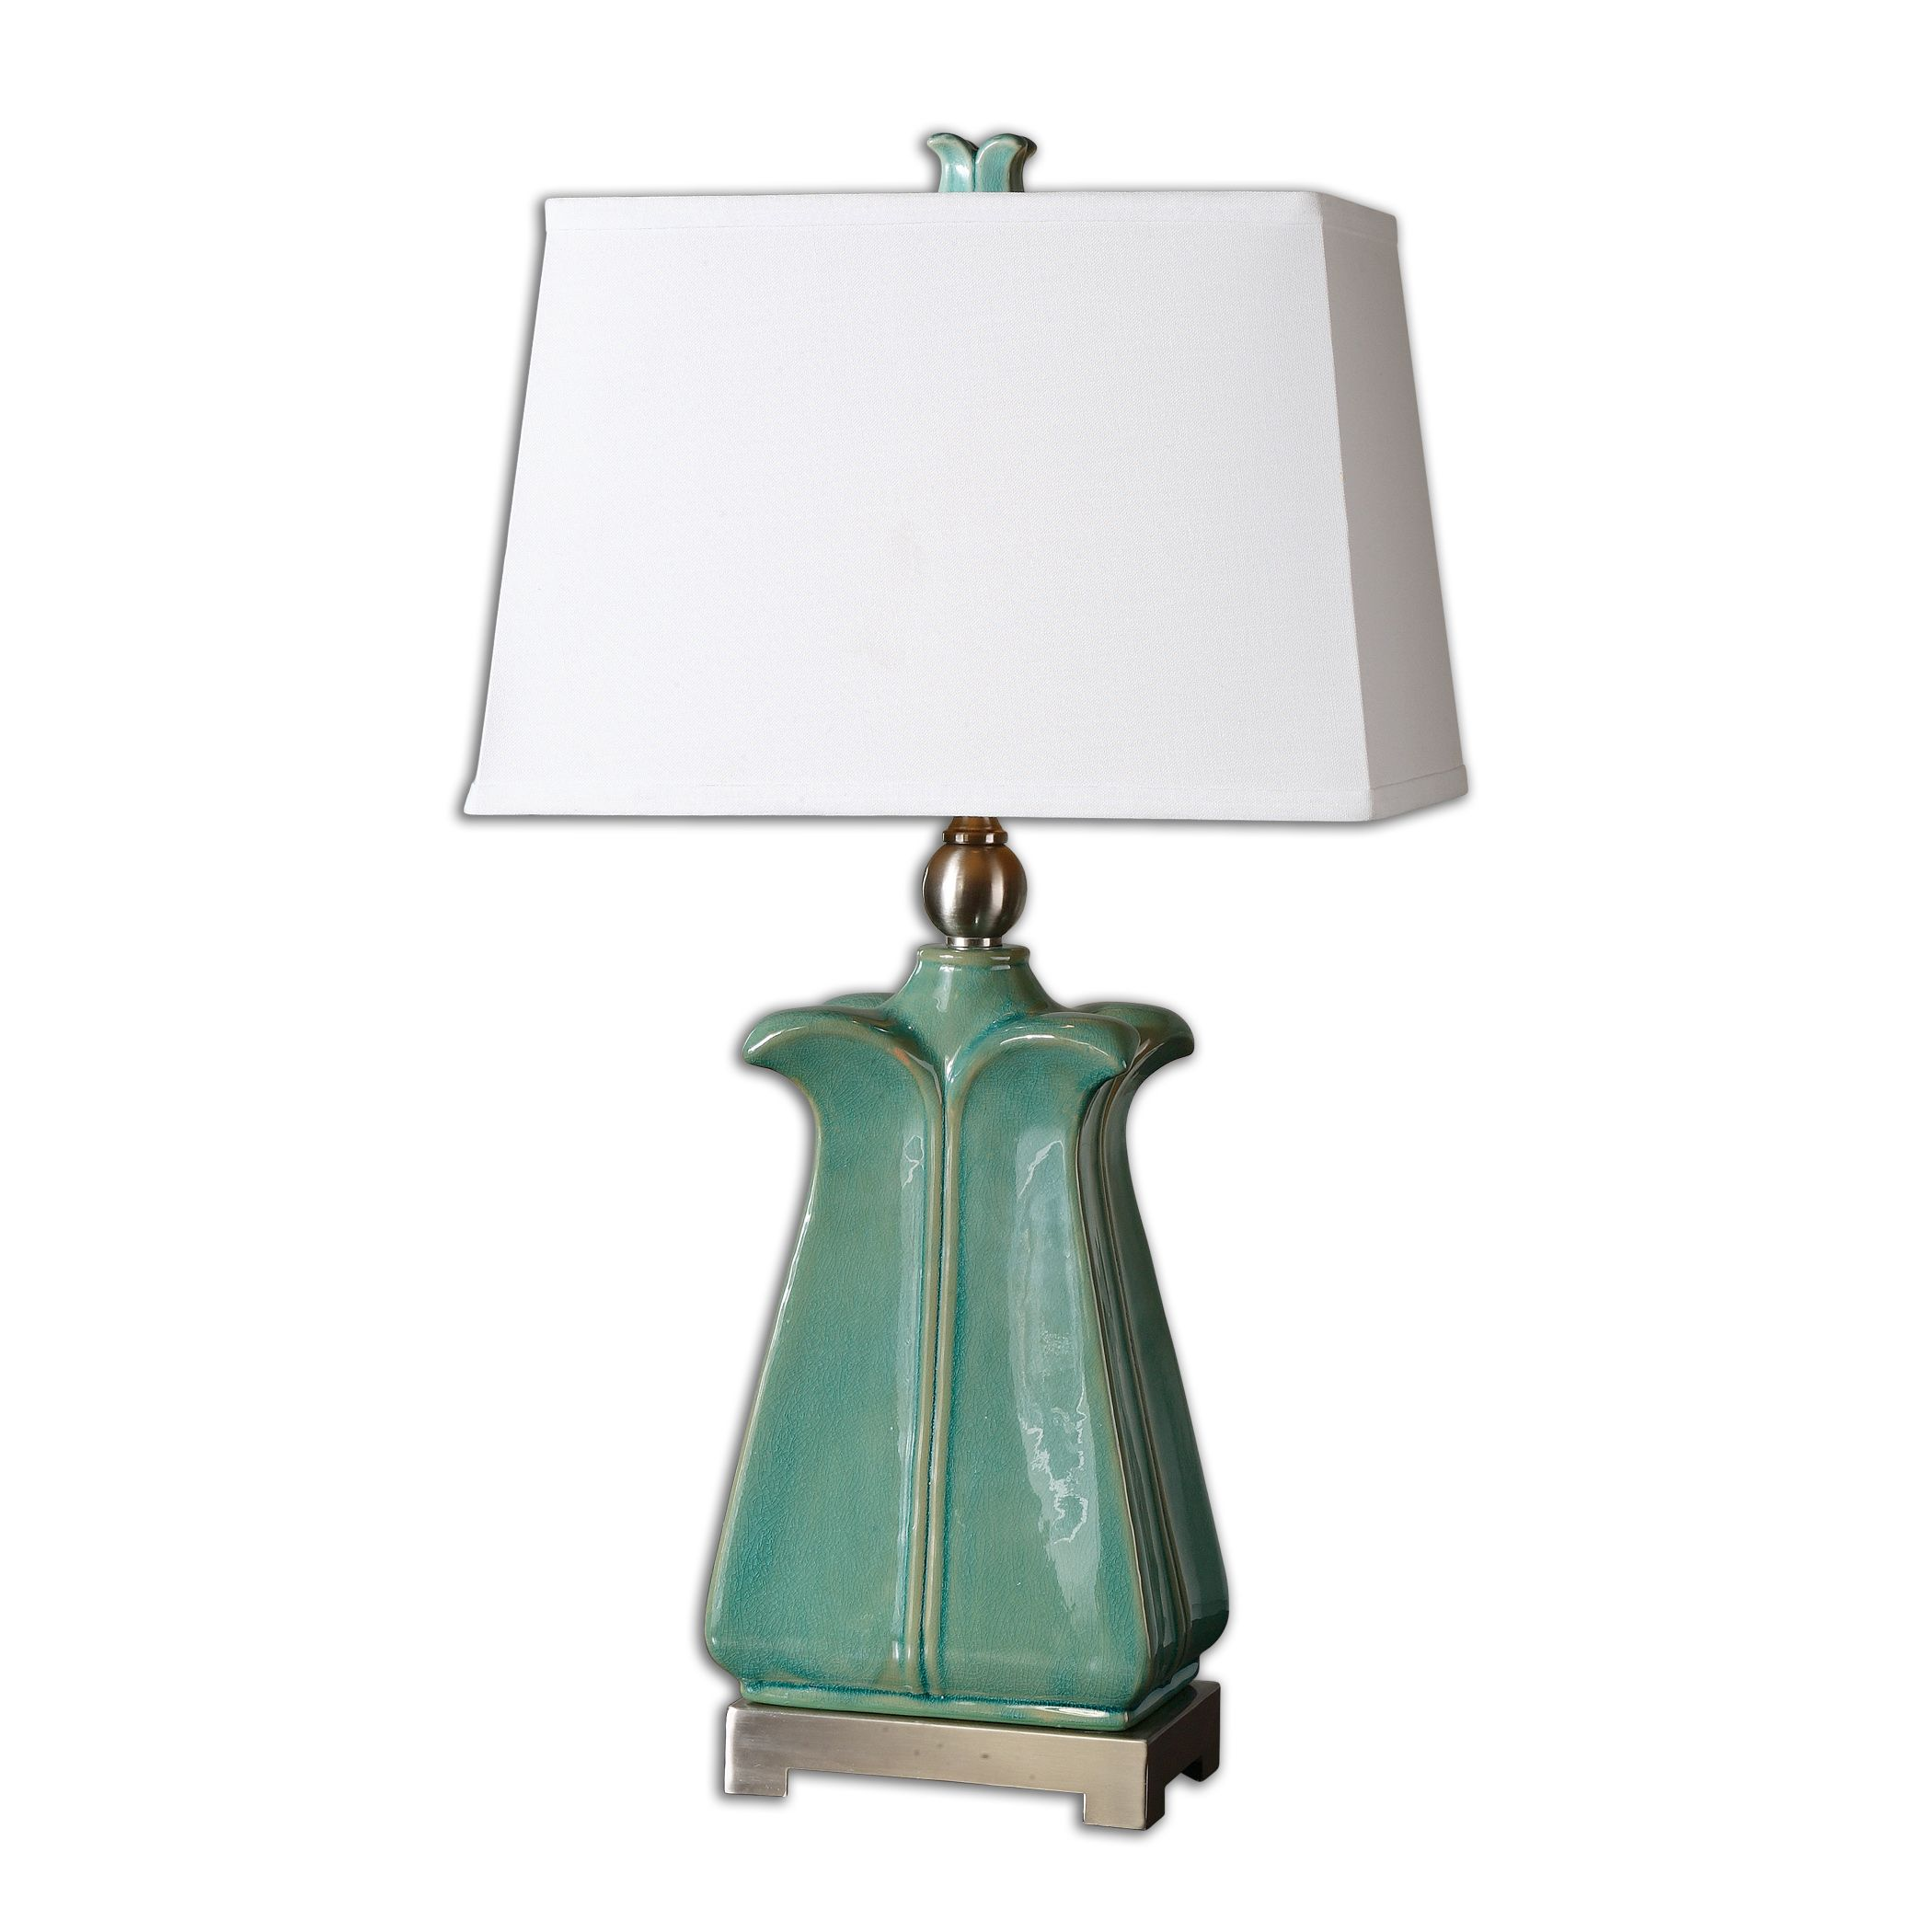 uttermost 26487 calciano teal table lamp. Black Bedroom Furniture Sets. Home Design Ideas